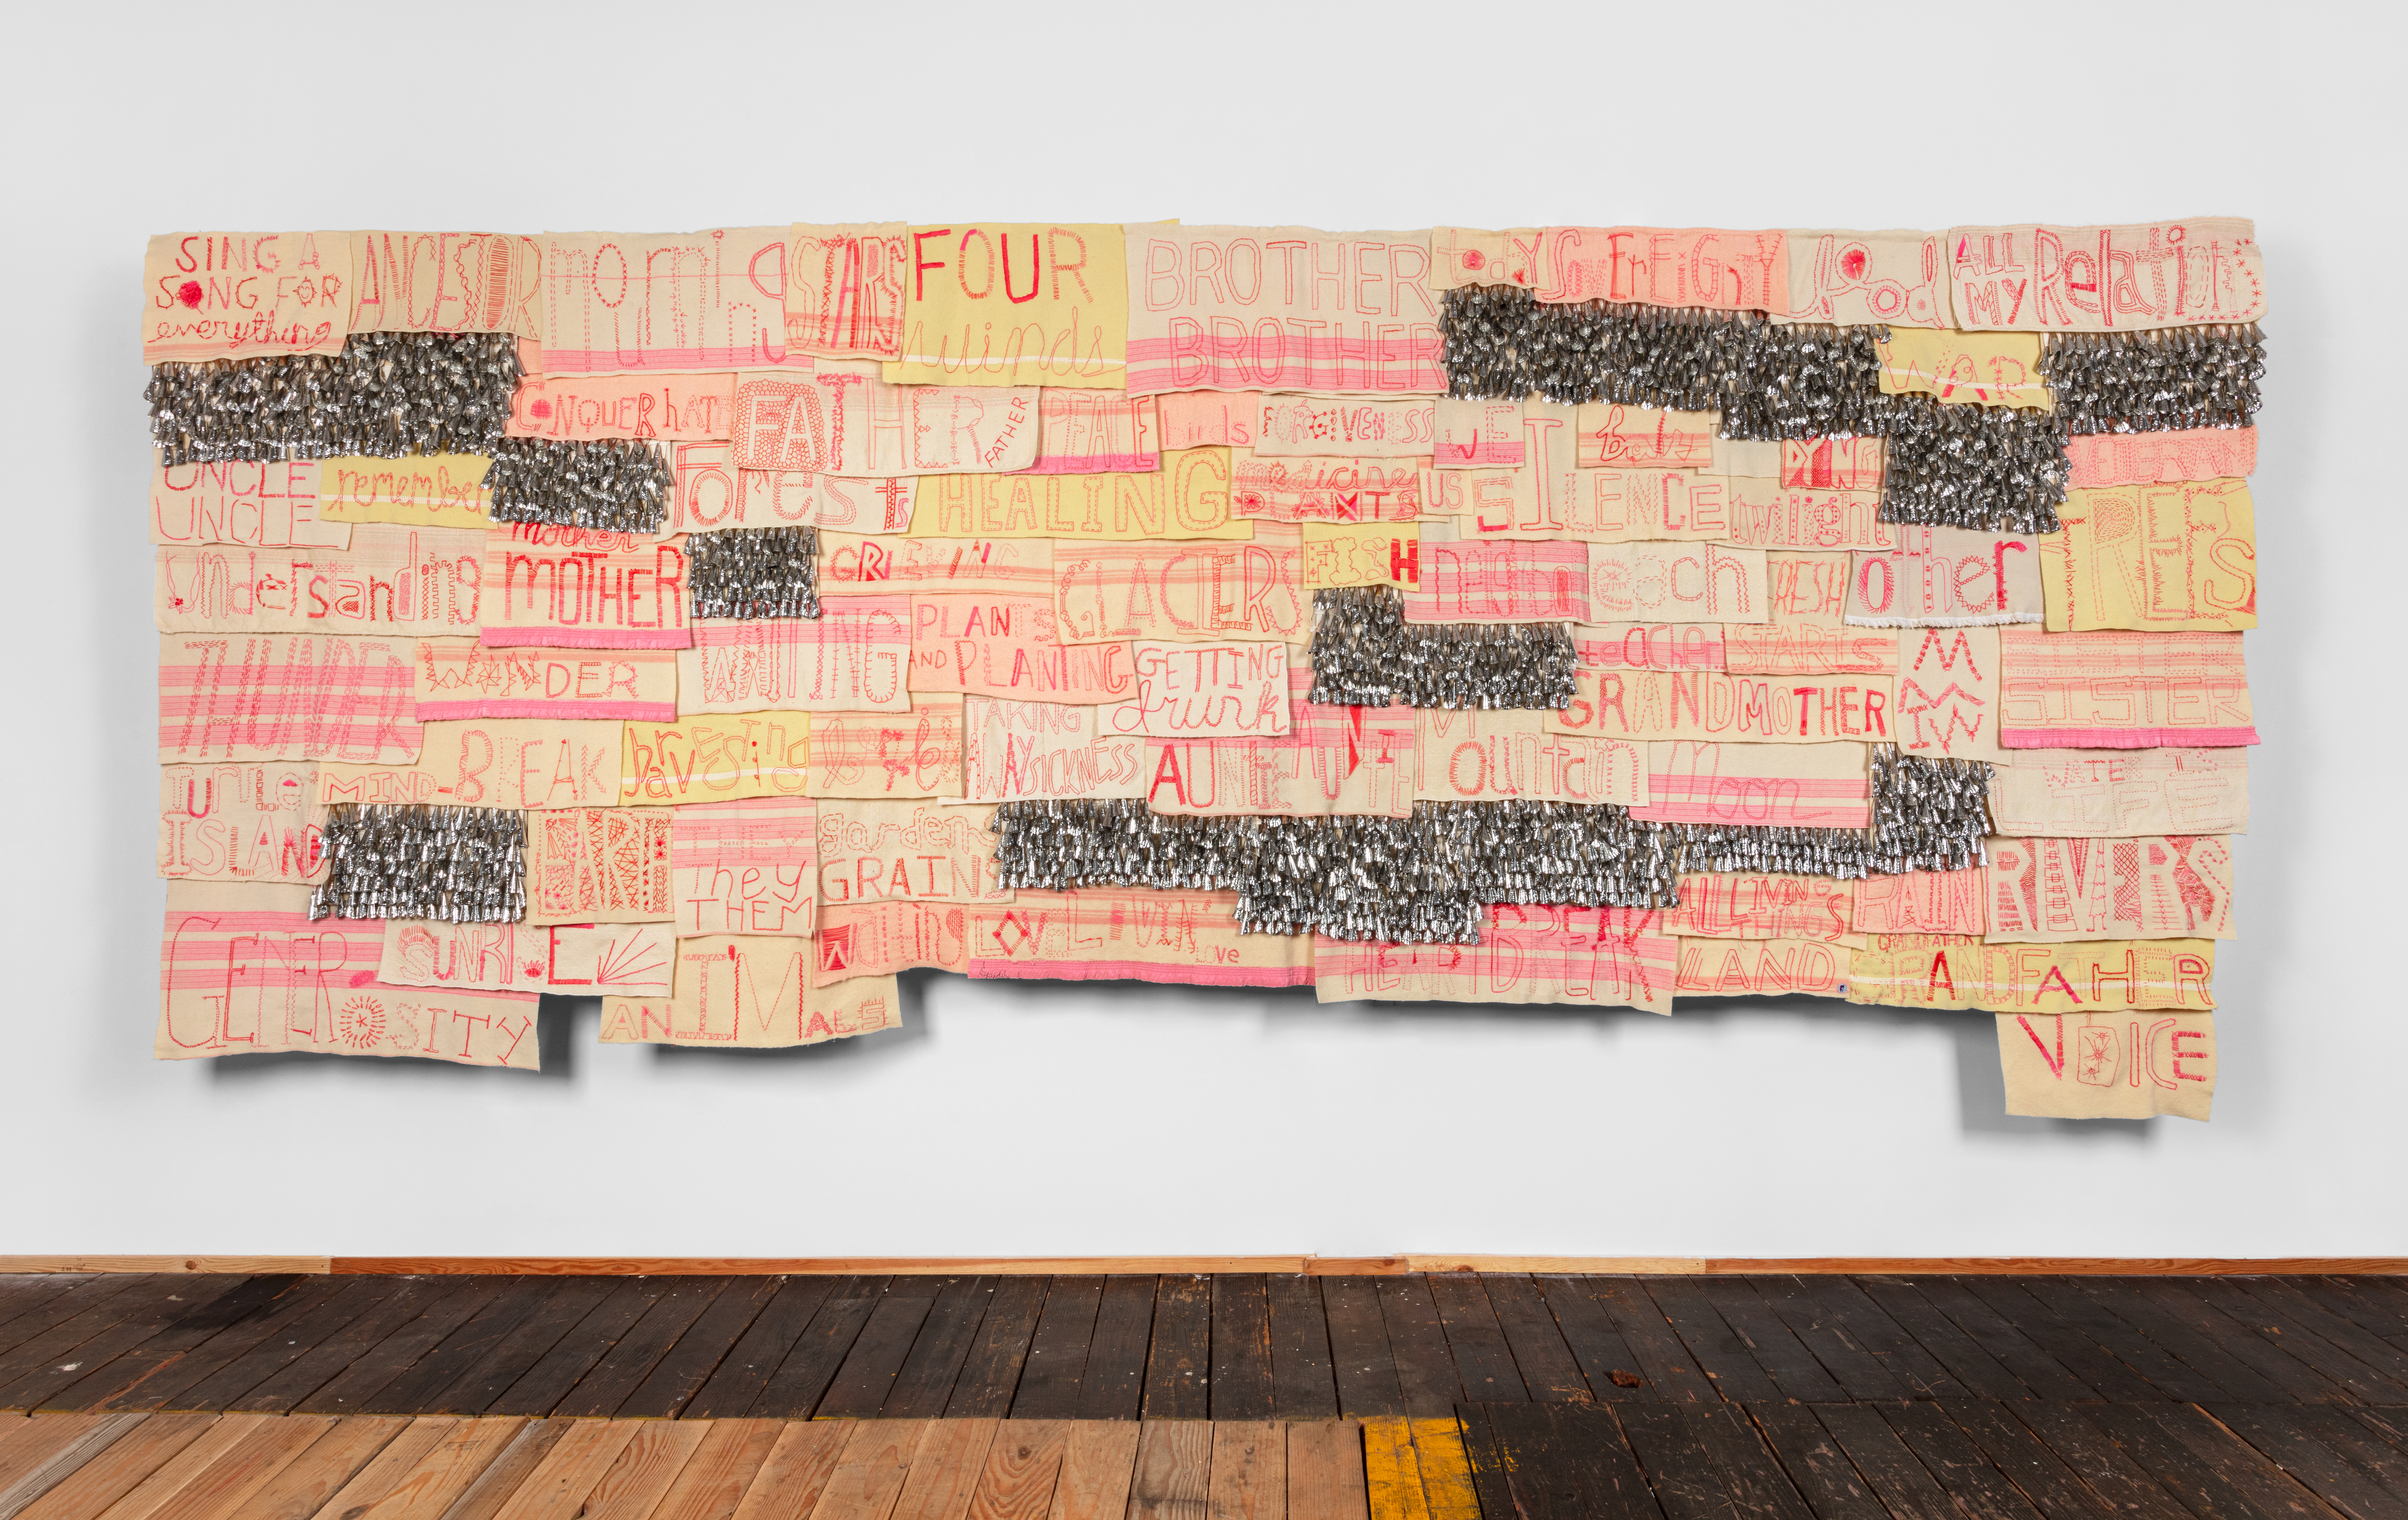 Marie Watt (b. 1967) Reclaimed wool blankets, embroidery floss, thread, cotton twill tape, tin jingles  82 x 194 inches  (208.28 x 492.76 cm) Photography by Kevin McConnell - Marc Straus Gallery